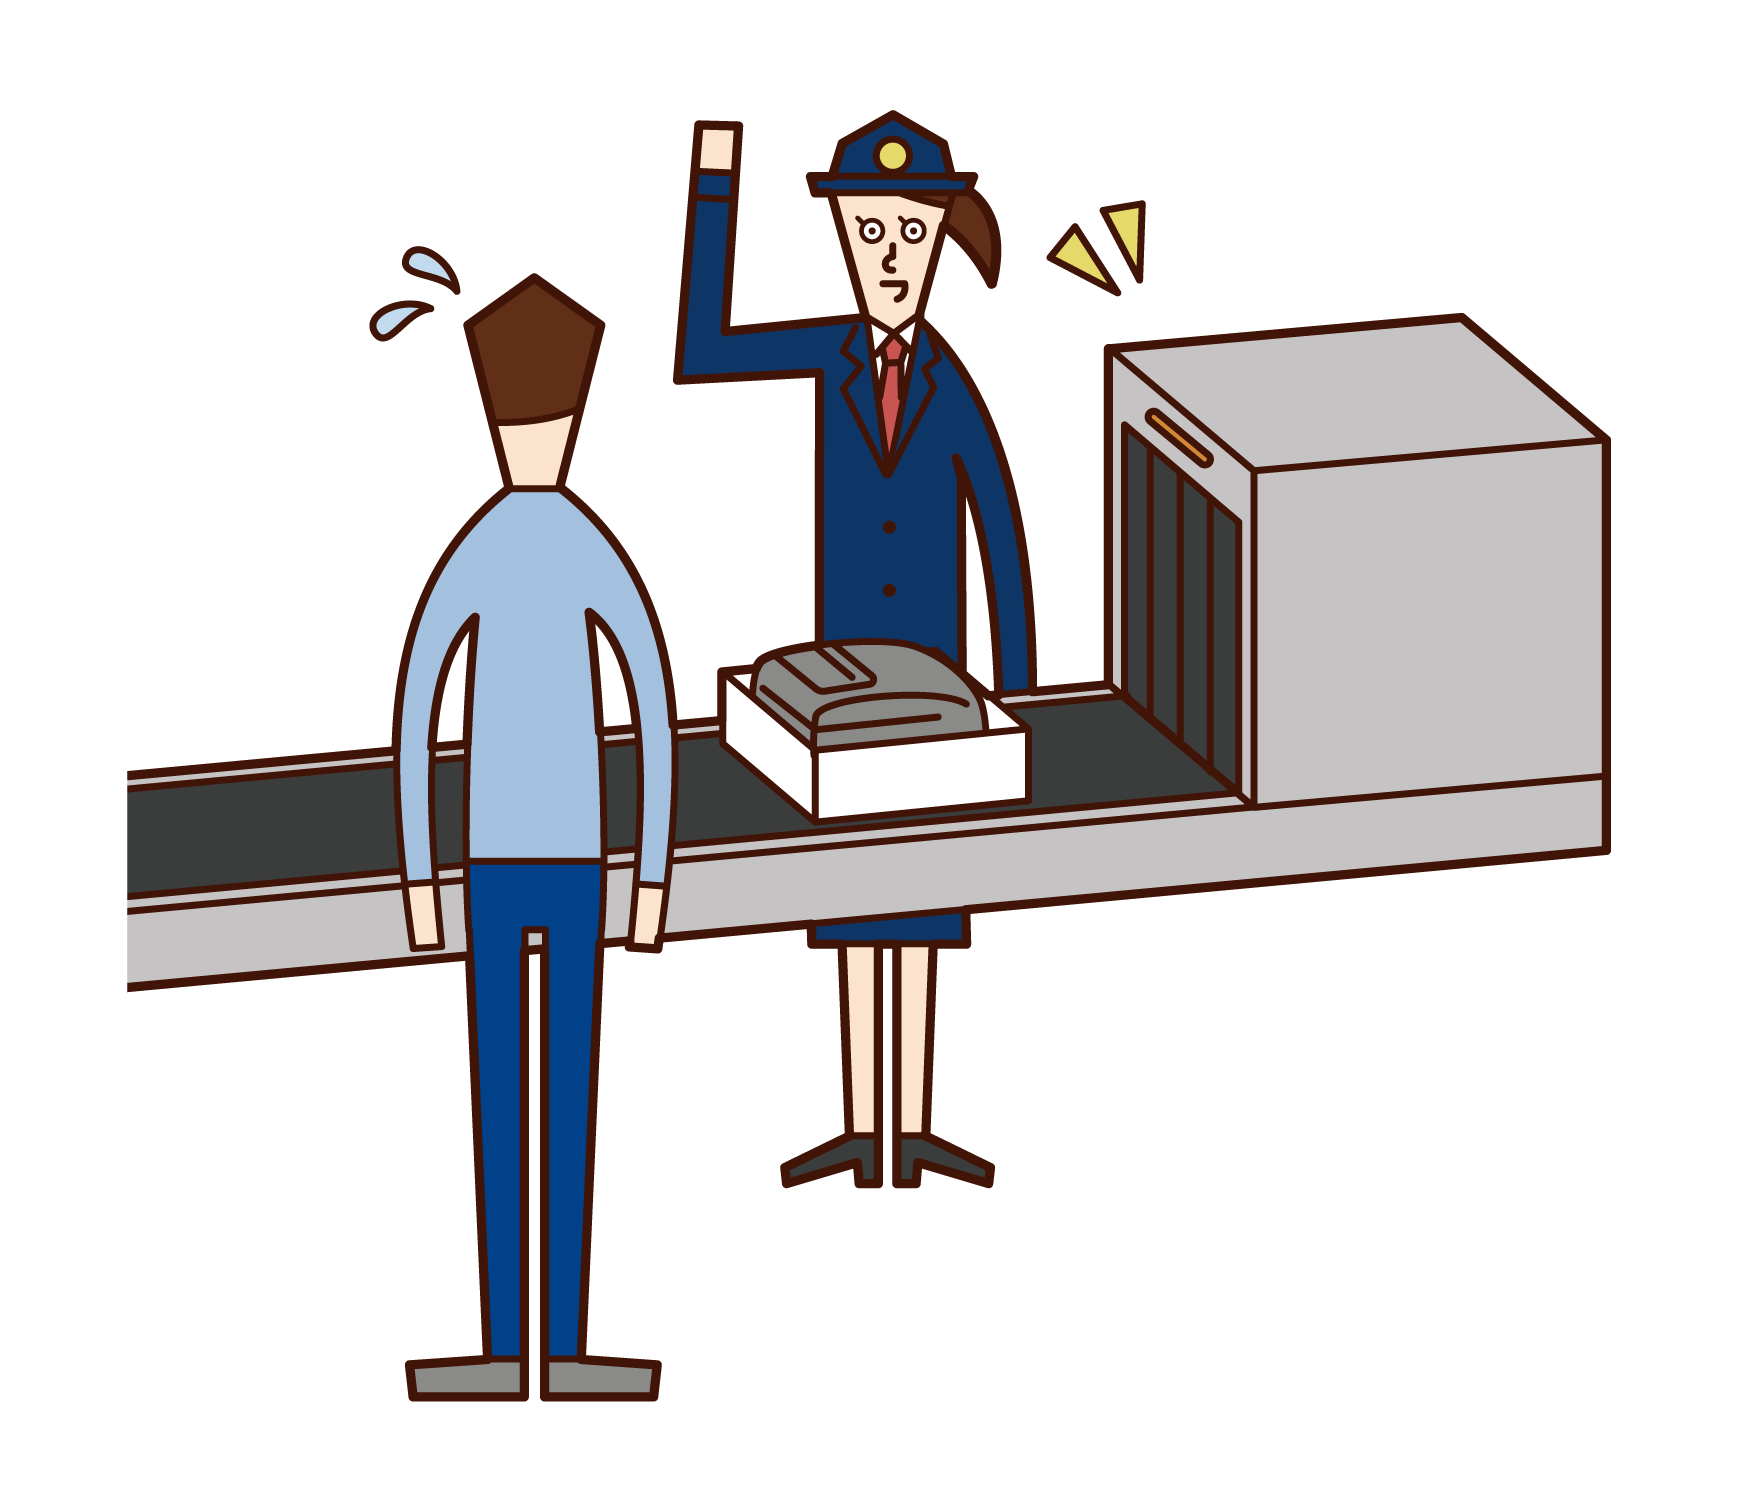 Illustration of a customs officer (woman) at the airport